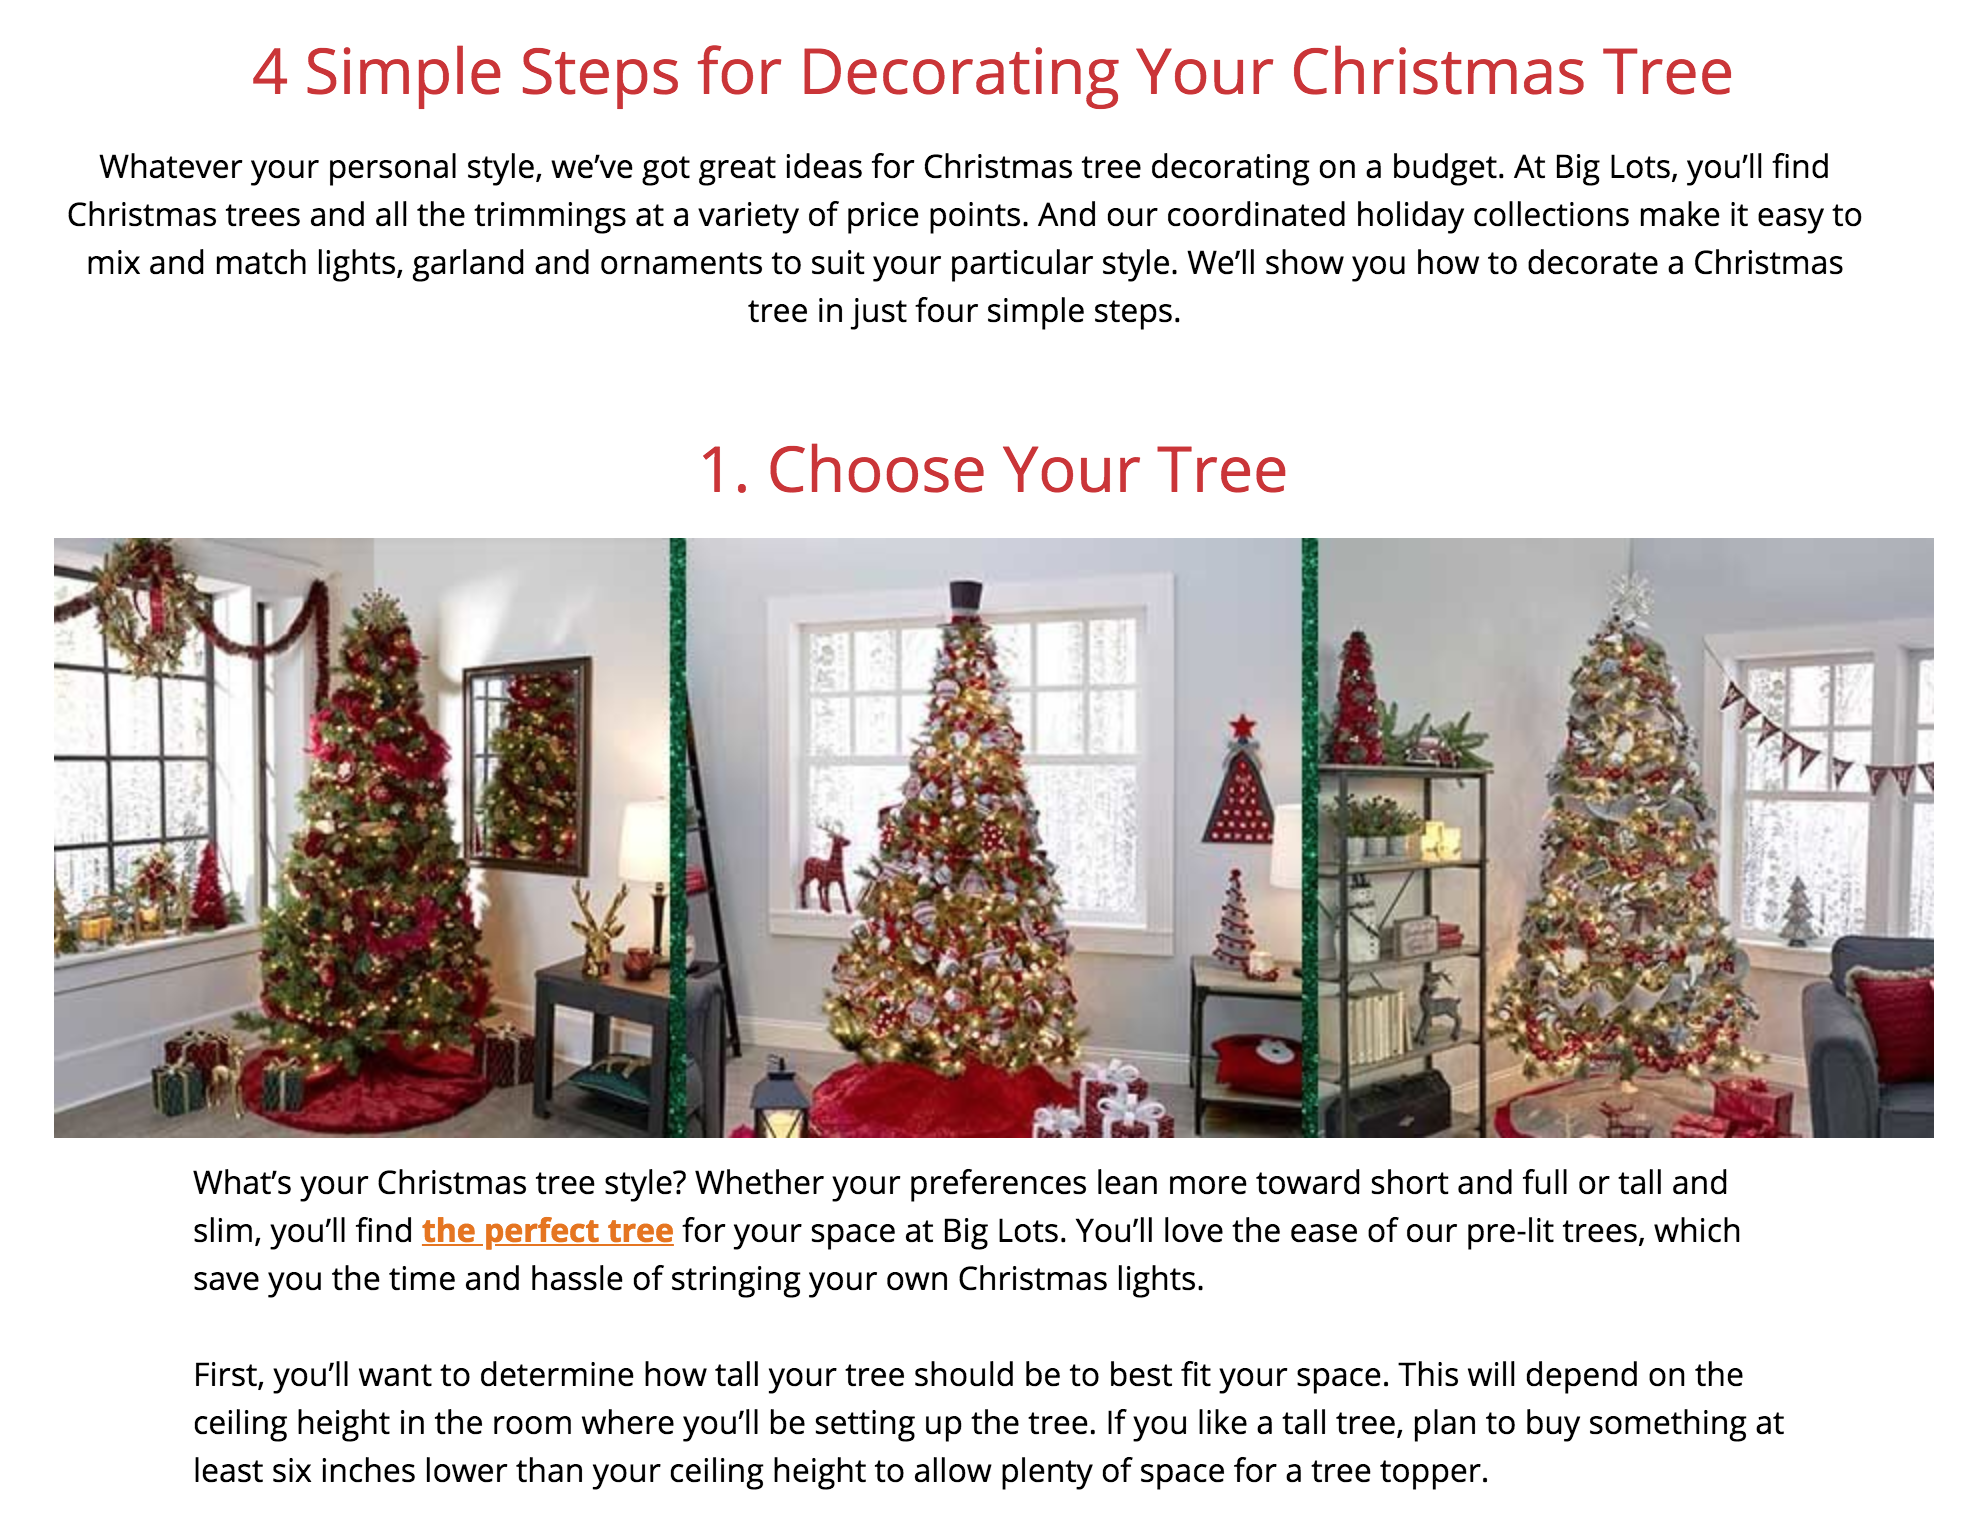 Big Lots holiday content - Wrote six seasonal holiday guides and how-to articles for Big Lots, including indoor and outdoor Christmas decoration ideas, gift guides and DIY gift and decor ideas. Articles were topic-based around highly searched keywords.Click here to read more!